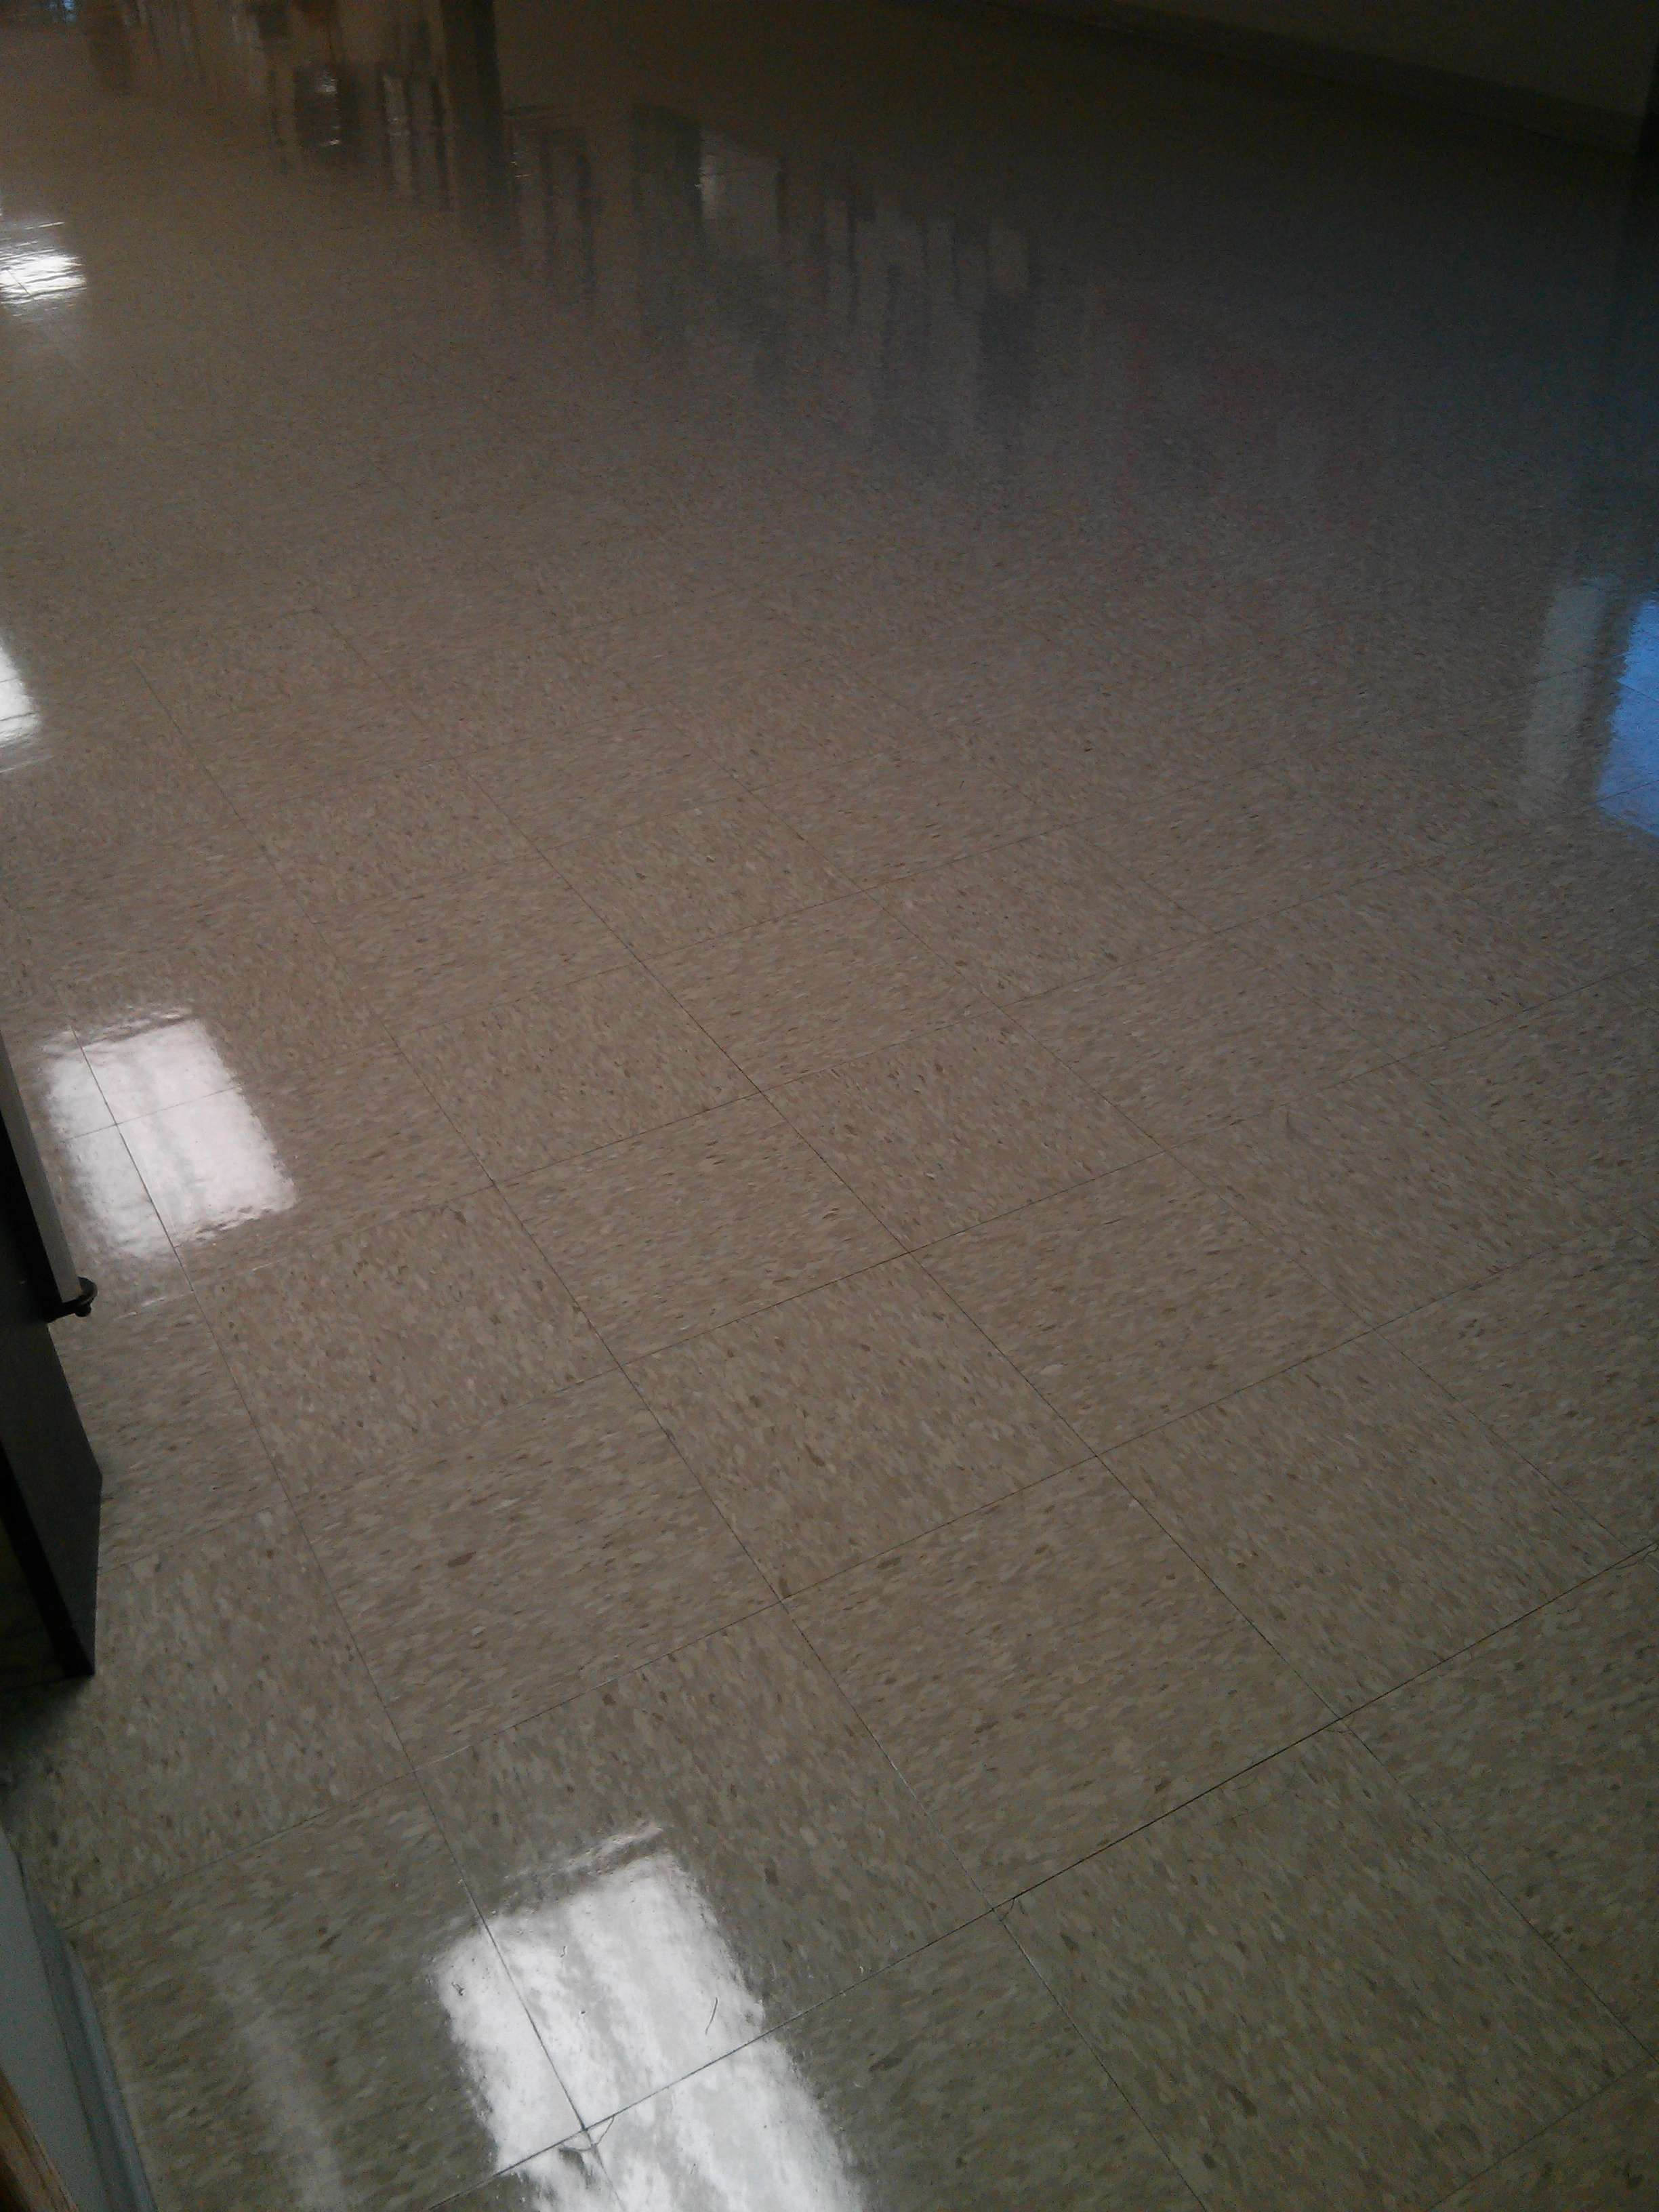 Deep clean vinyl floor and recoat vinyl floor finish in st paul mn old vct tile floor scrub and clear coat mn dailygadgetfo Choice Image